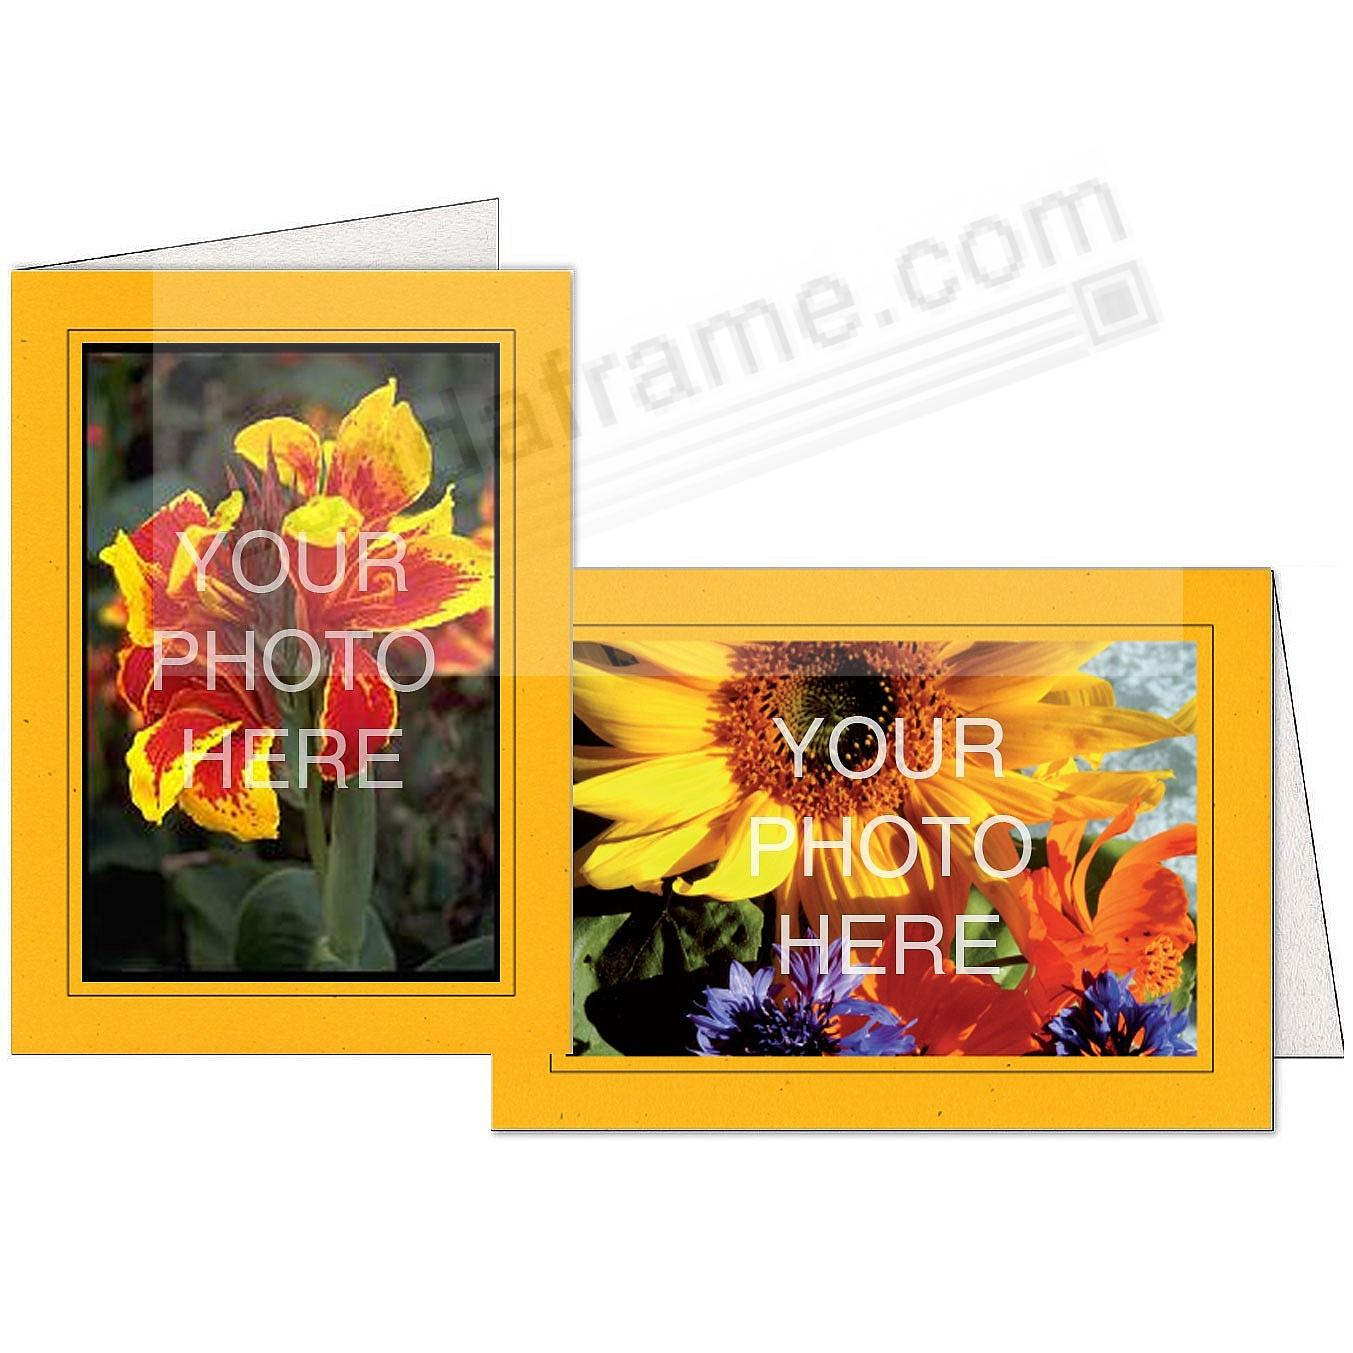 SUNFLOWER-ORANGE w/Black Trim Border Photo Insert Card (sold in 10s)